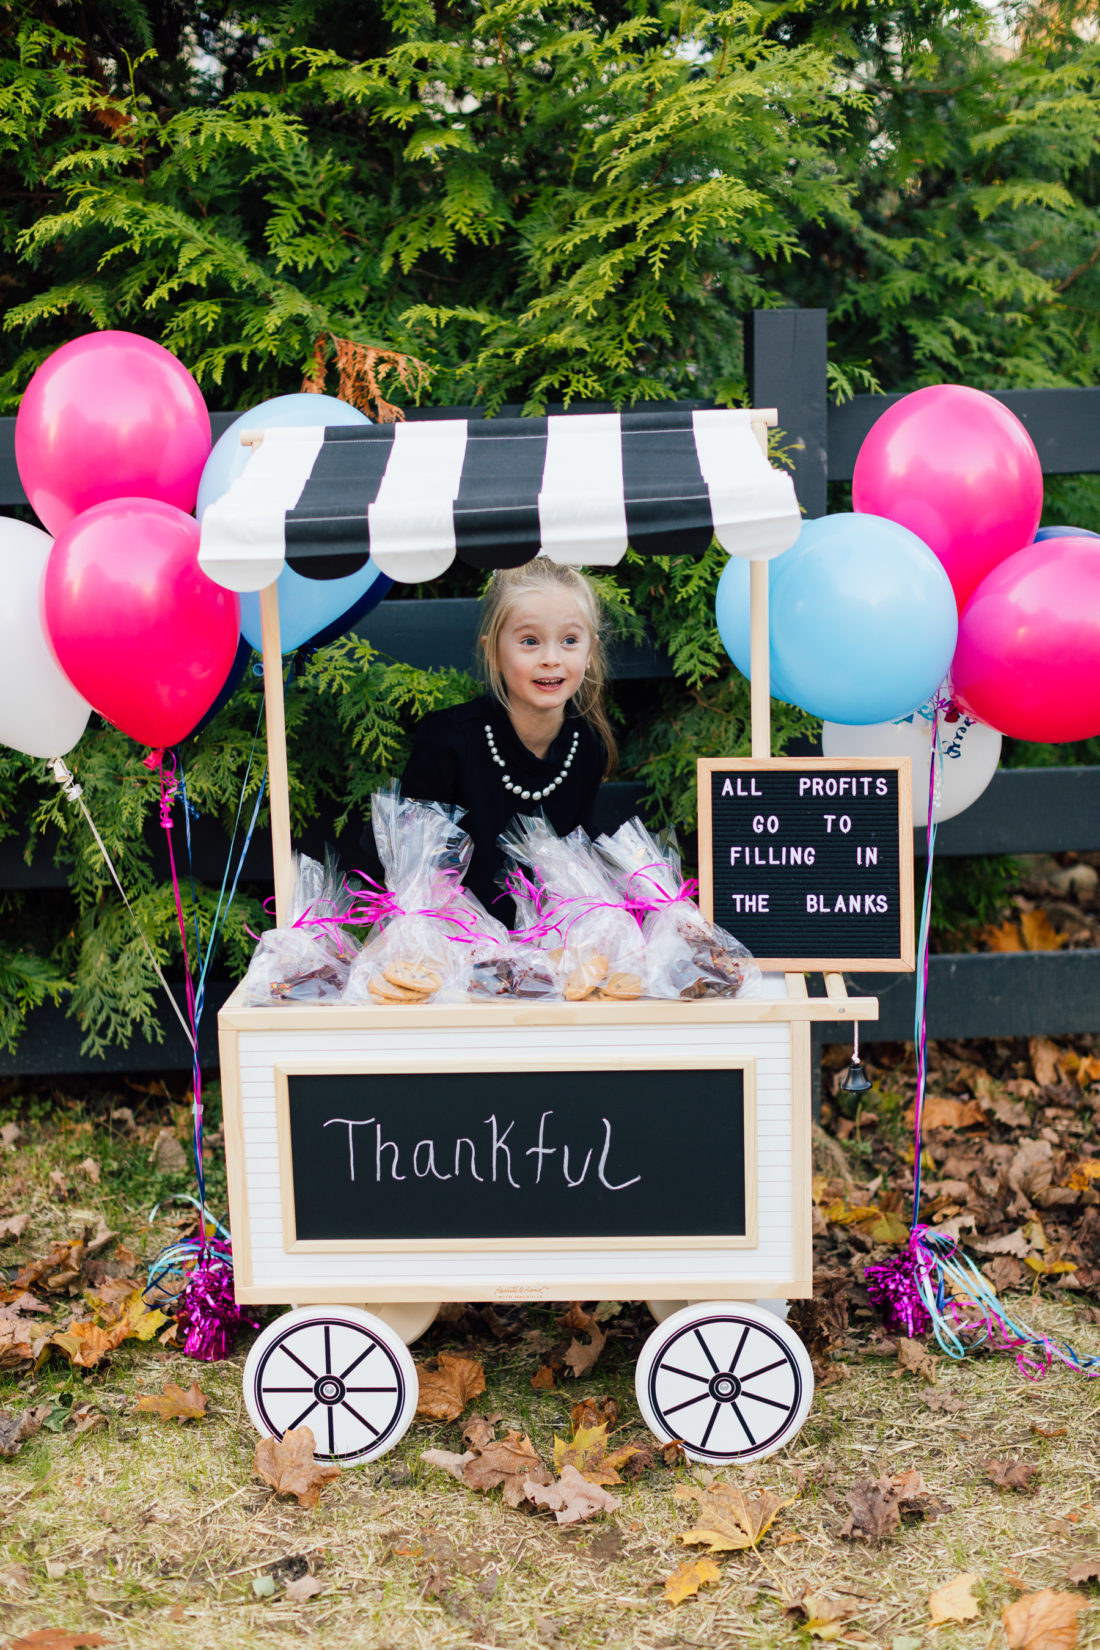 Marlowe Martino sells baked goods to raise money to benefit nonprofit organization Filling in the Blanks